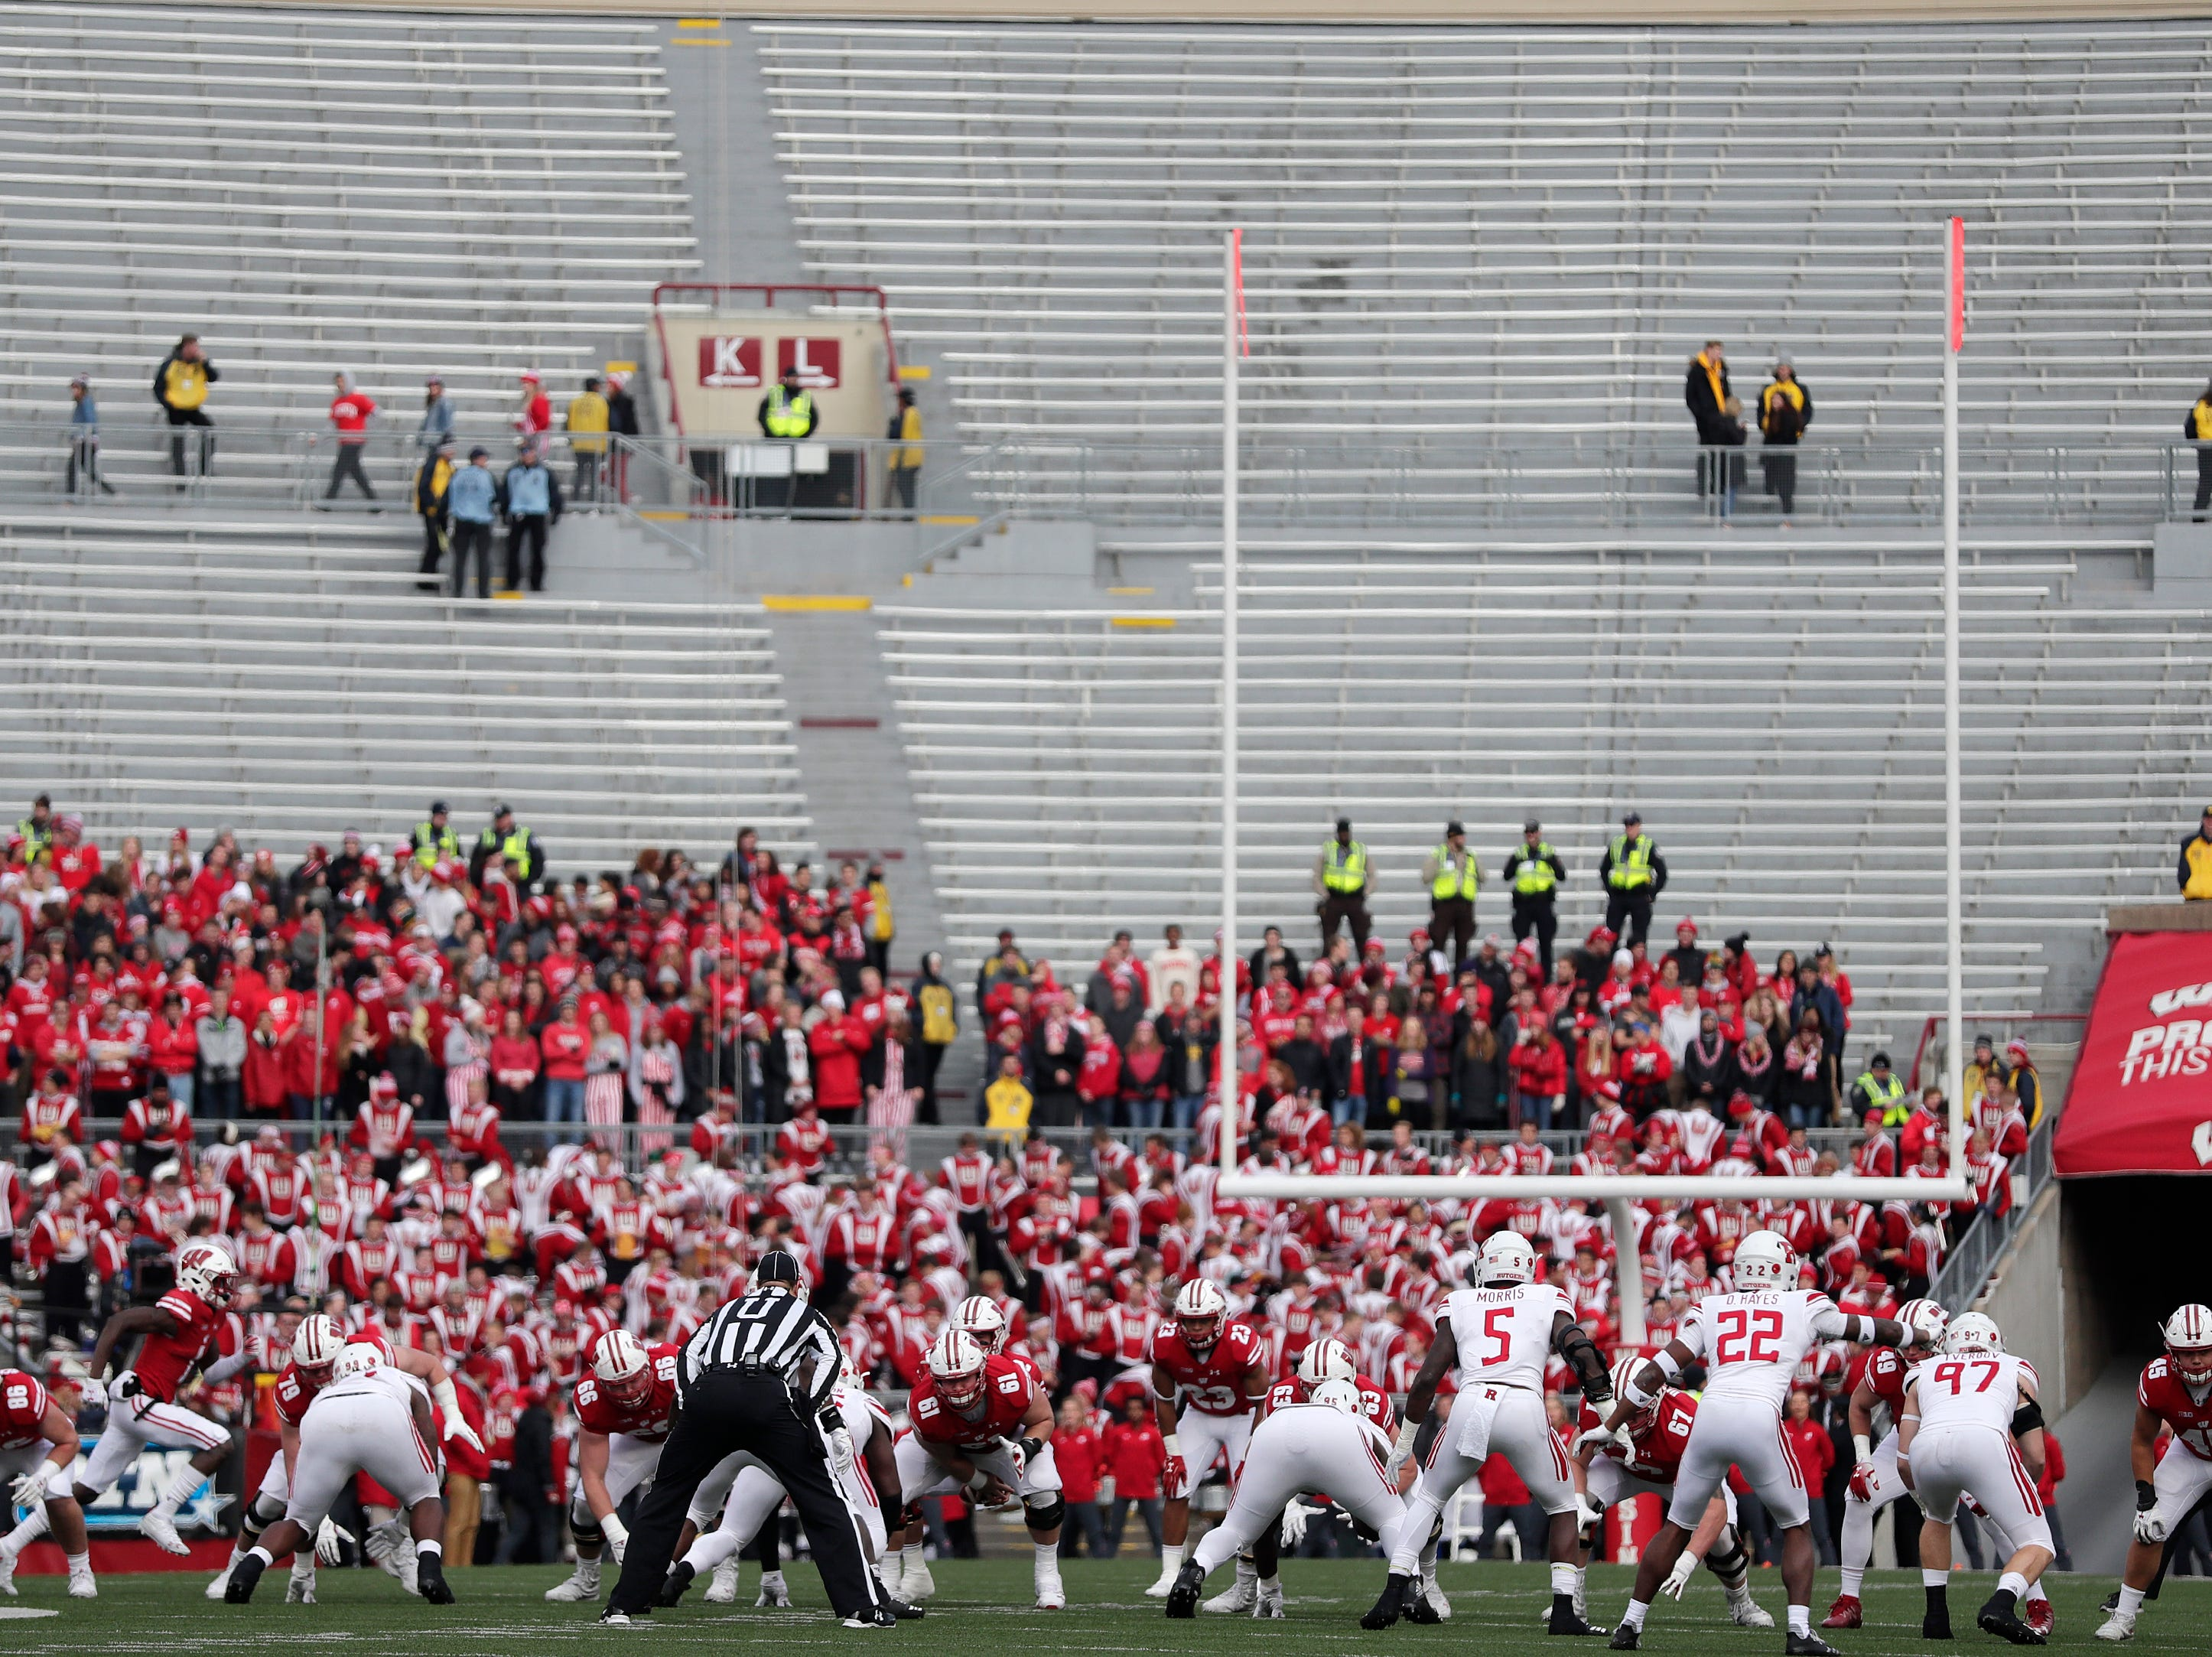 The Wisconsin Badgers play the Rutgers Scarlet Knights in a Big Ten football game at Camp Randall Stadium on Saturday, November 3, 2018 in Madison, Wis.Adam Wesley/USA TODAY NETWORK-Wisconsin